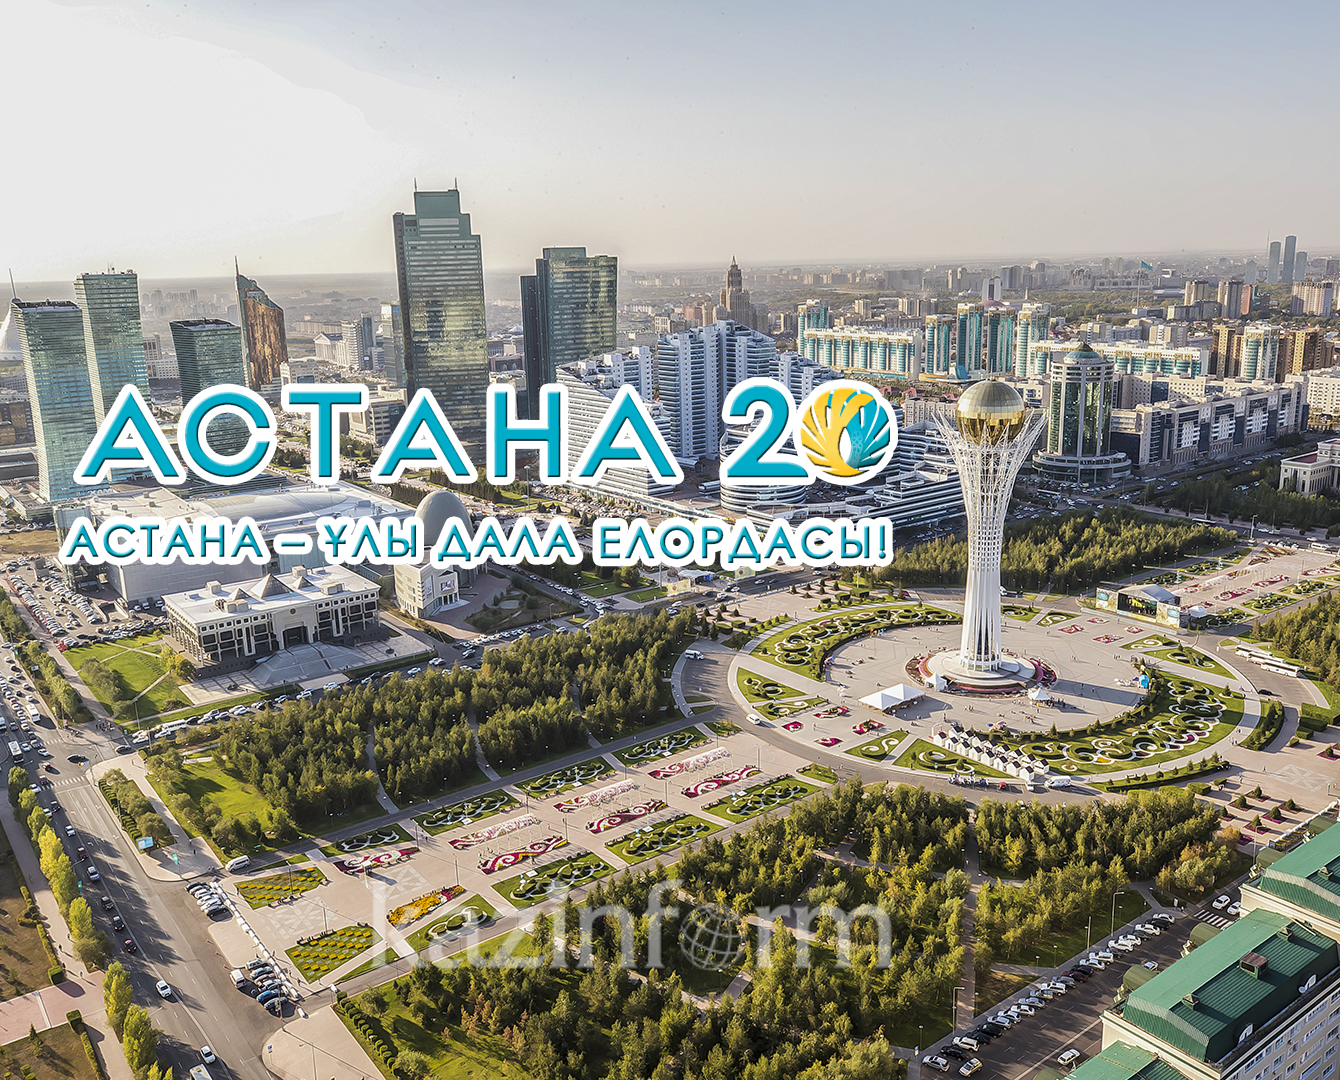 Astana turns 20, celebrations held across Kazakhstan